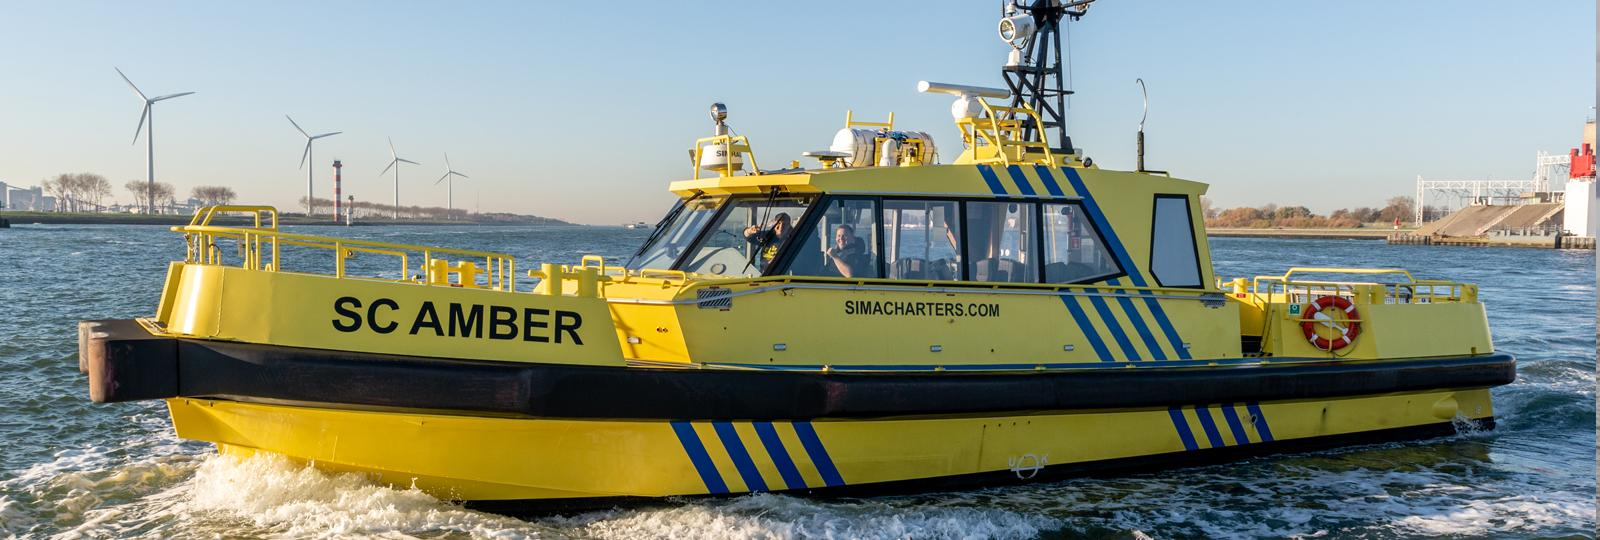 windfarm support  - Sima Charters - SC Amber